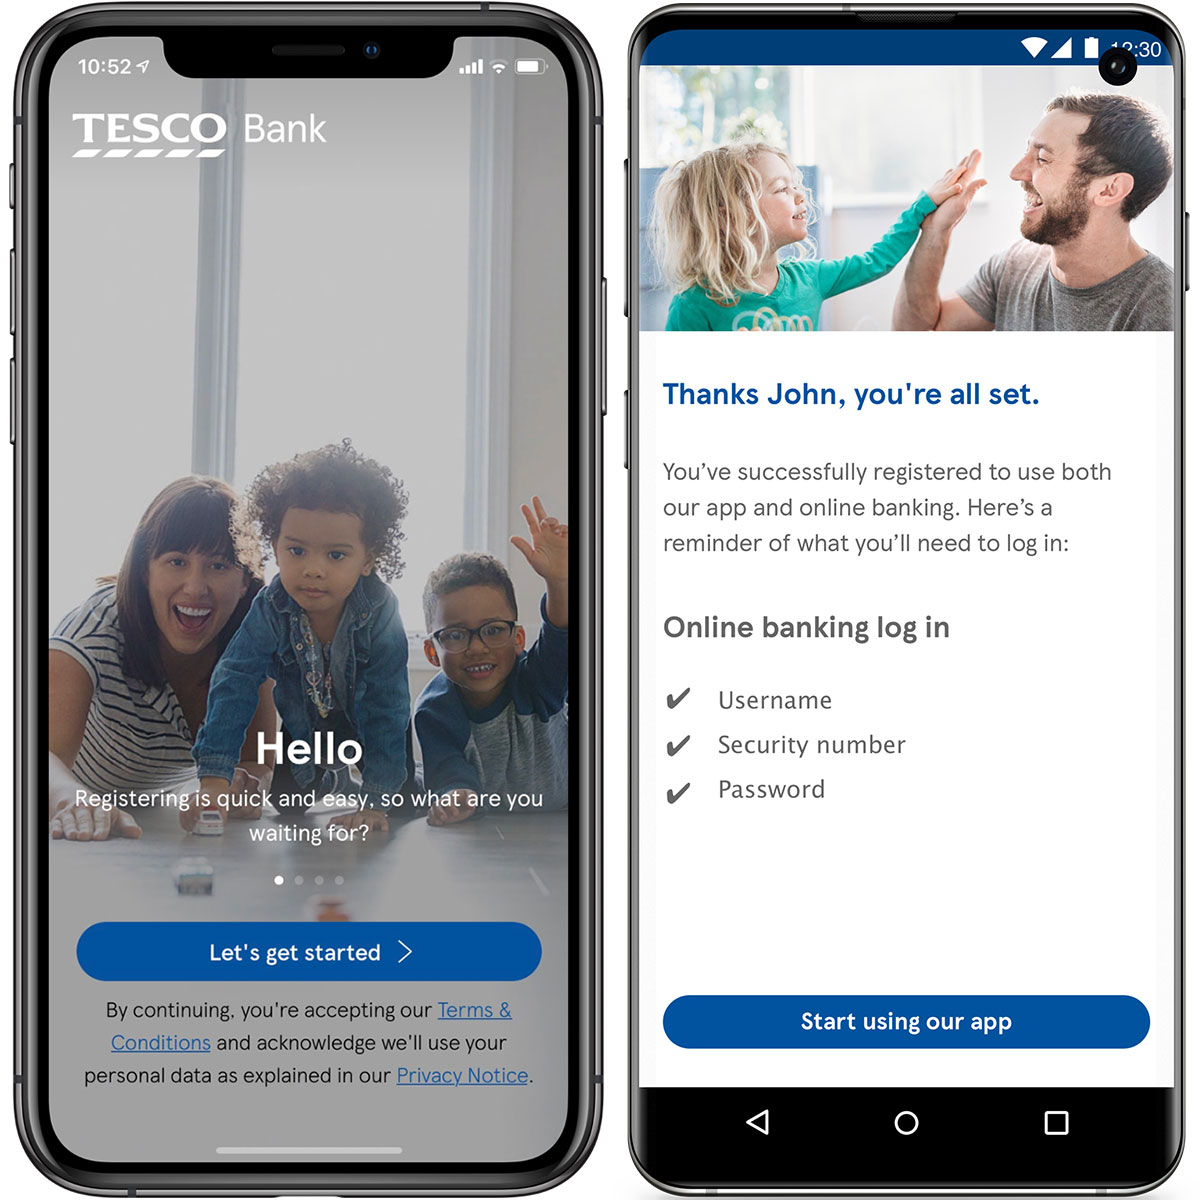 Tesco Bank's mobile app landing page.